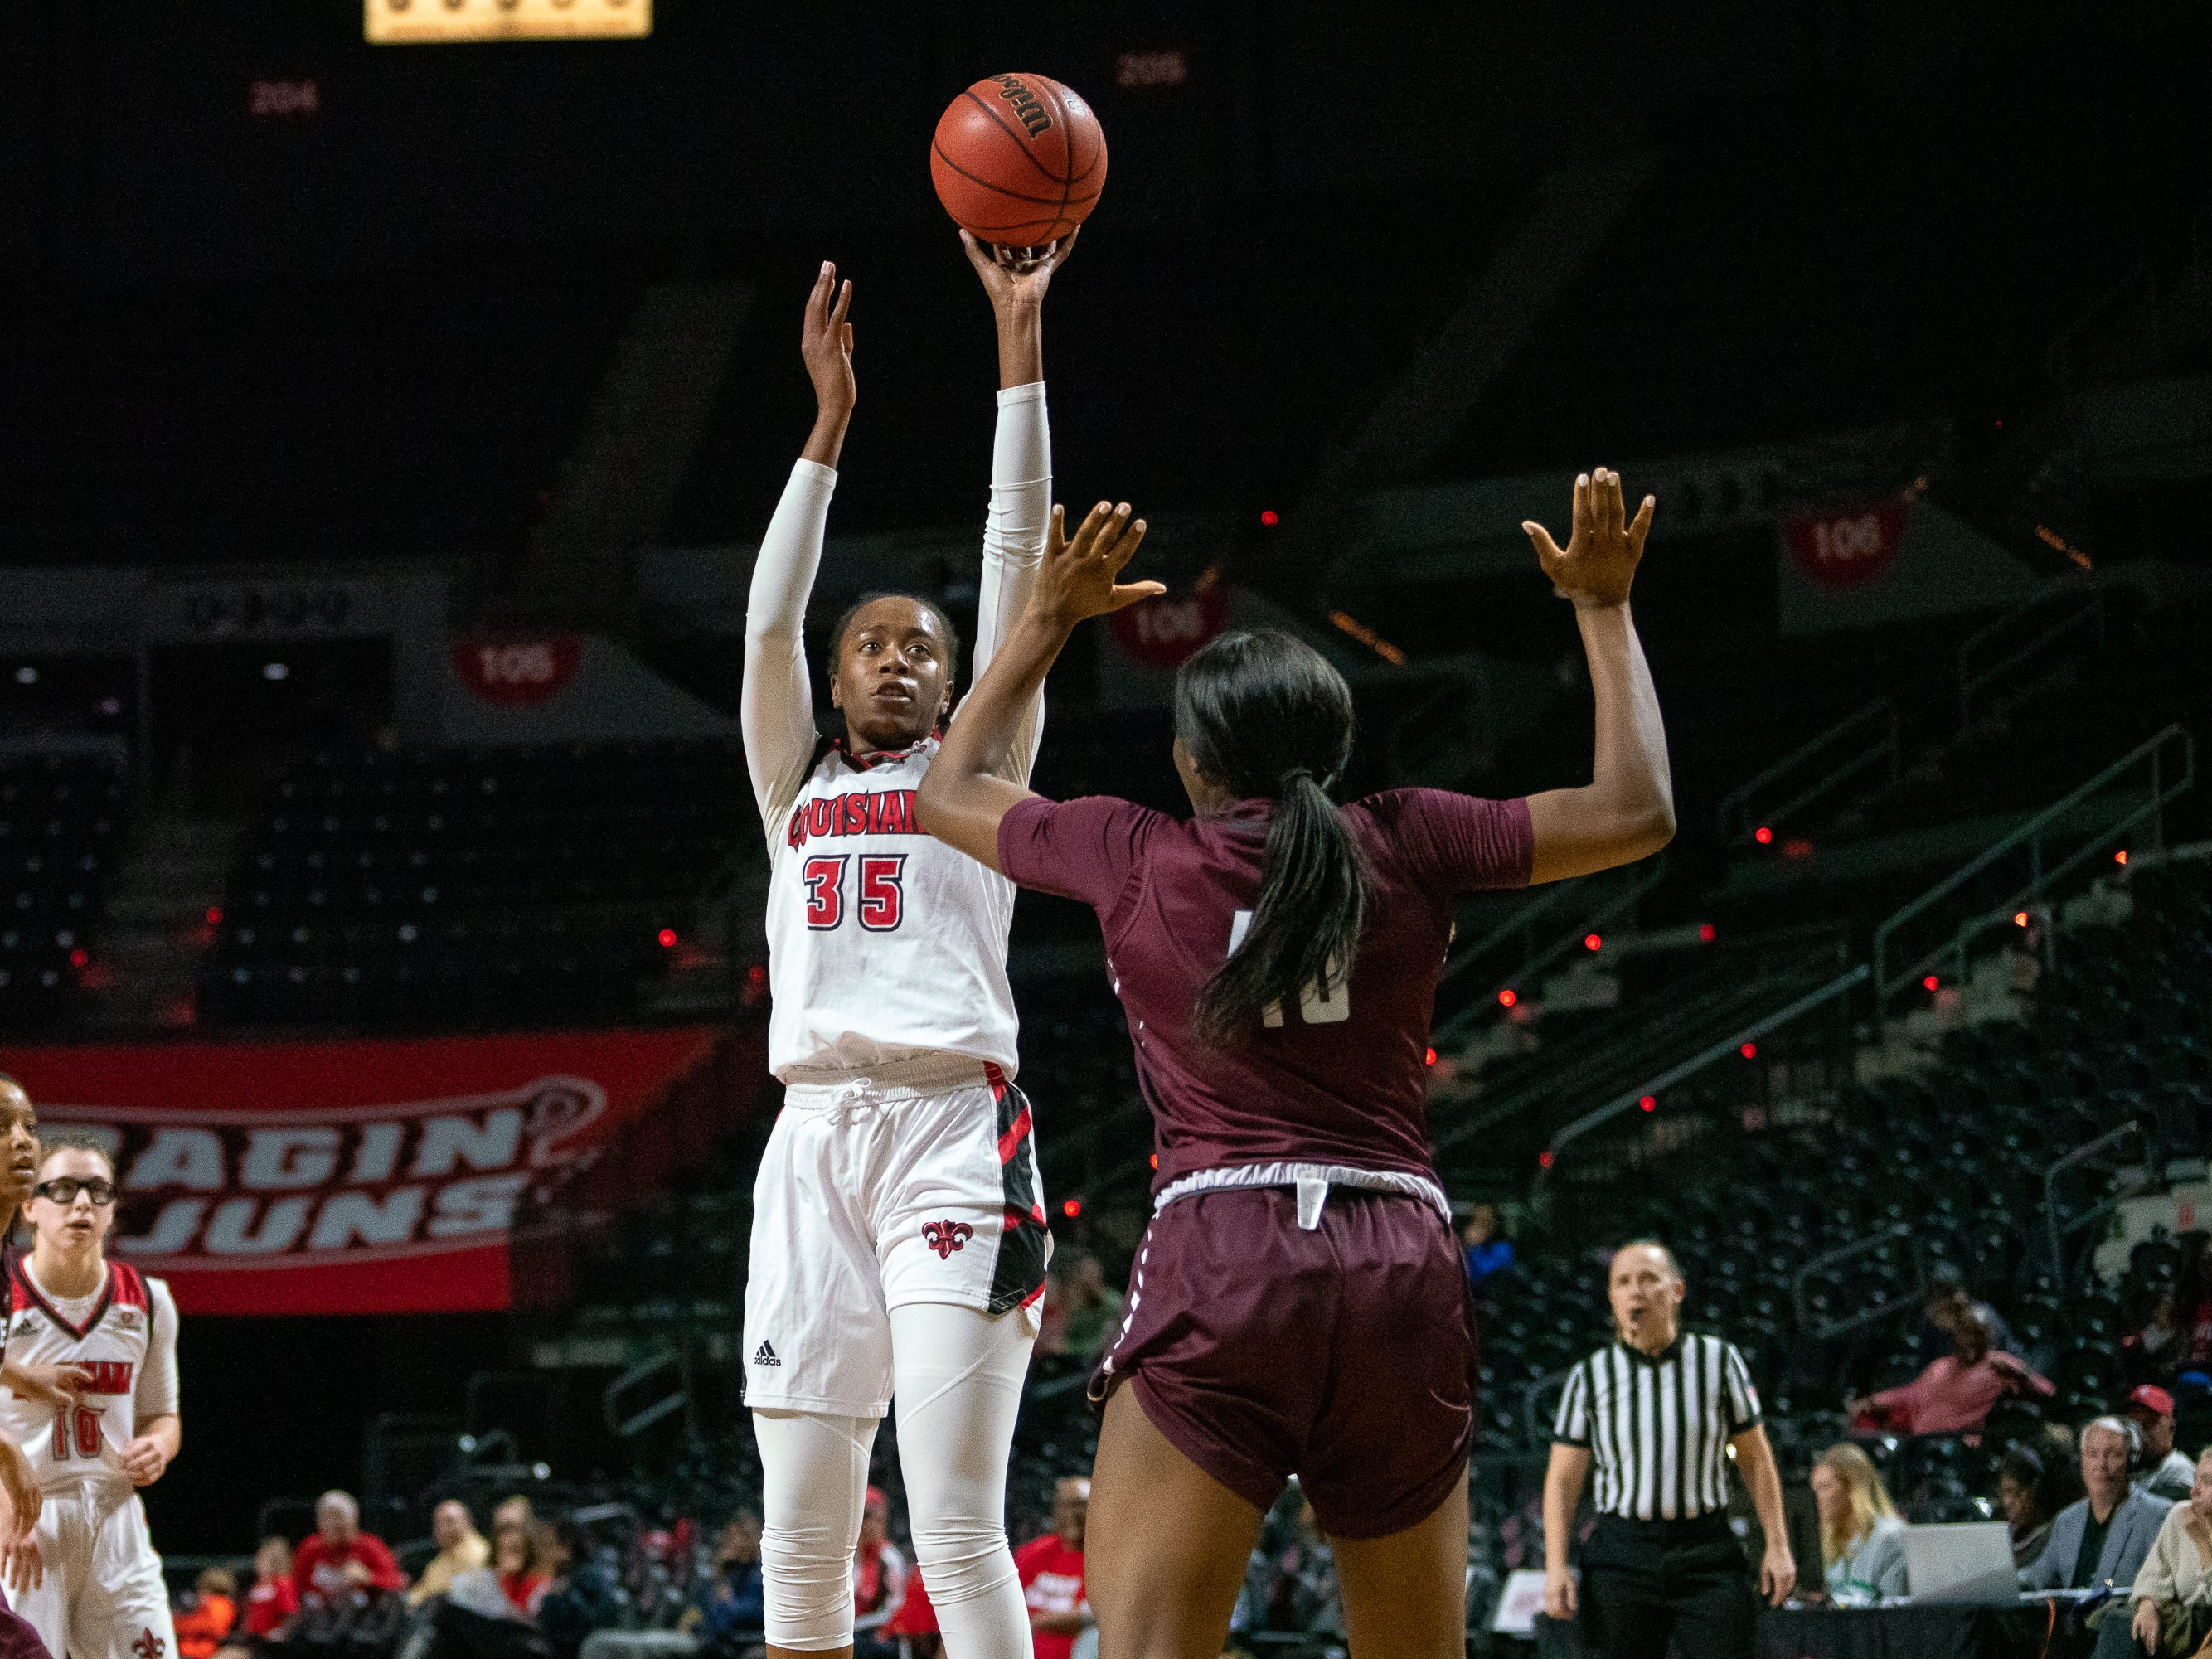 UL's Ty'Reona Doucet shoots to score as the Ragin' Cajuns take on the Little Rock Trojans at the Cajundome on Thursday, March 7, 2019.